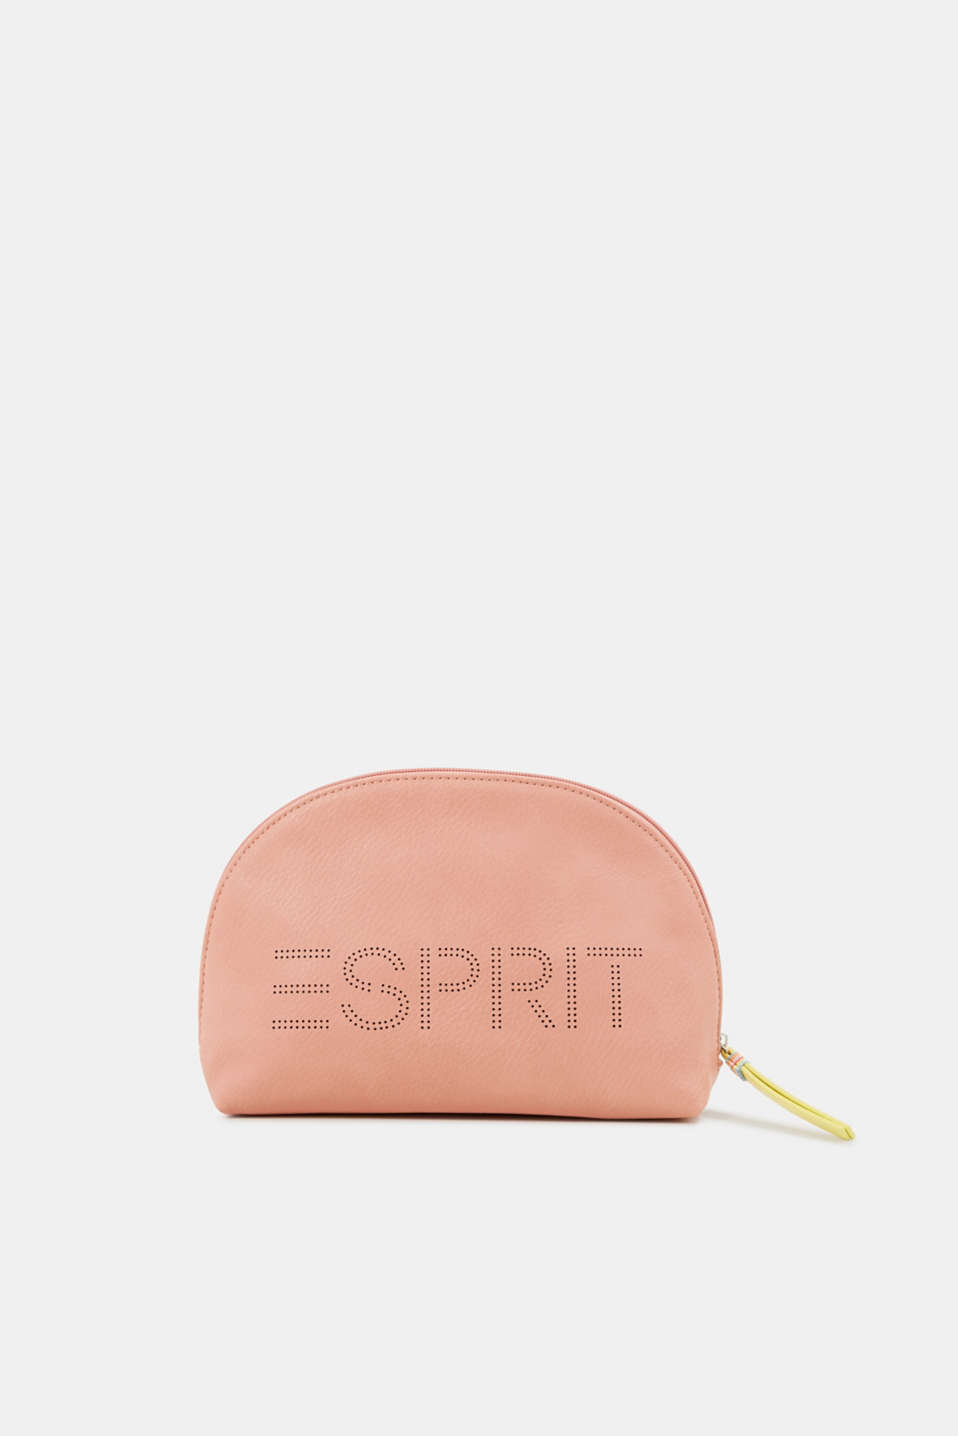 Susie T cosmetics bag., BLUSH, detail image number 0